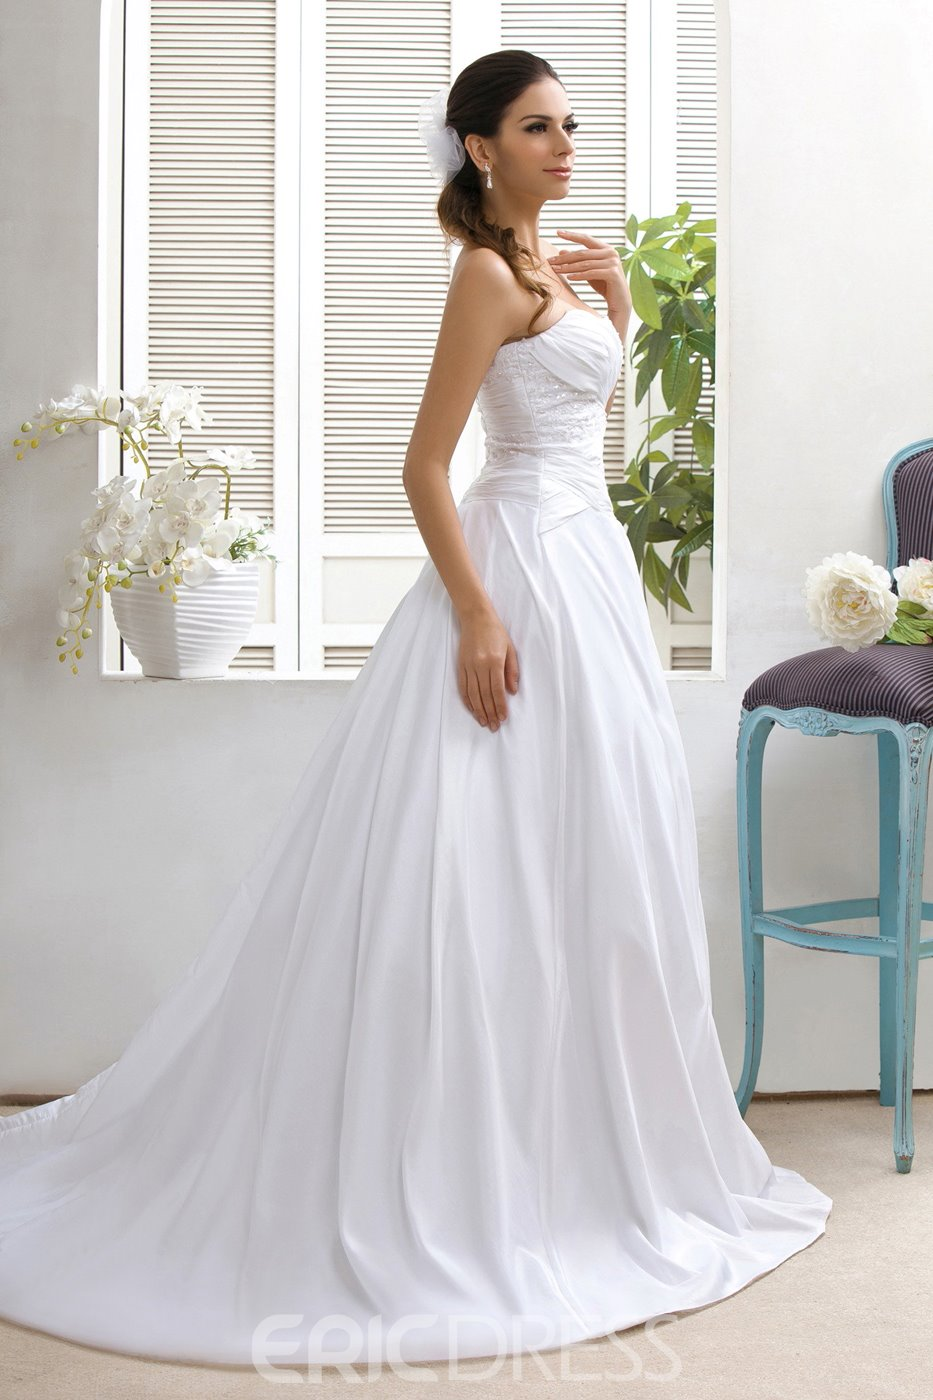 Concise Strapless A-Line Sweep Appliques Wedding Dress